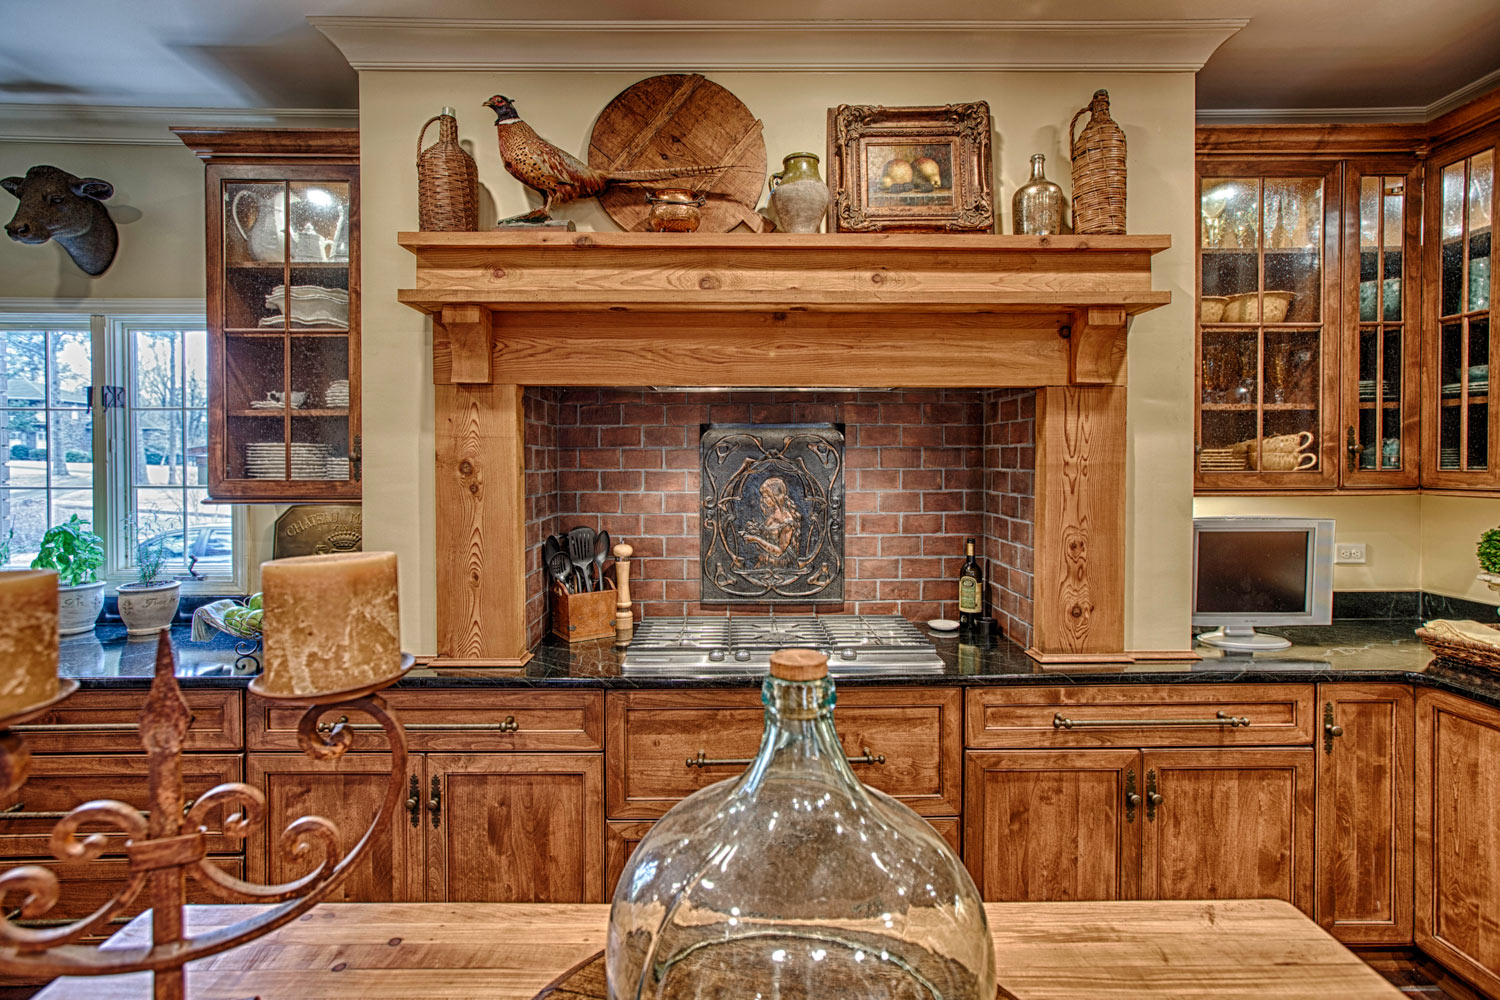 Common Characteristics And Wood Species Used In Kitchen